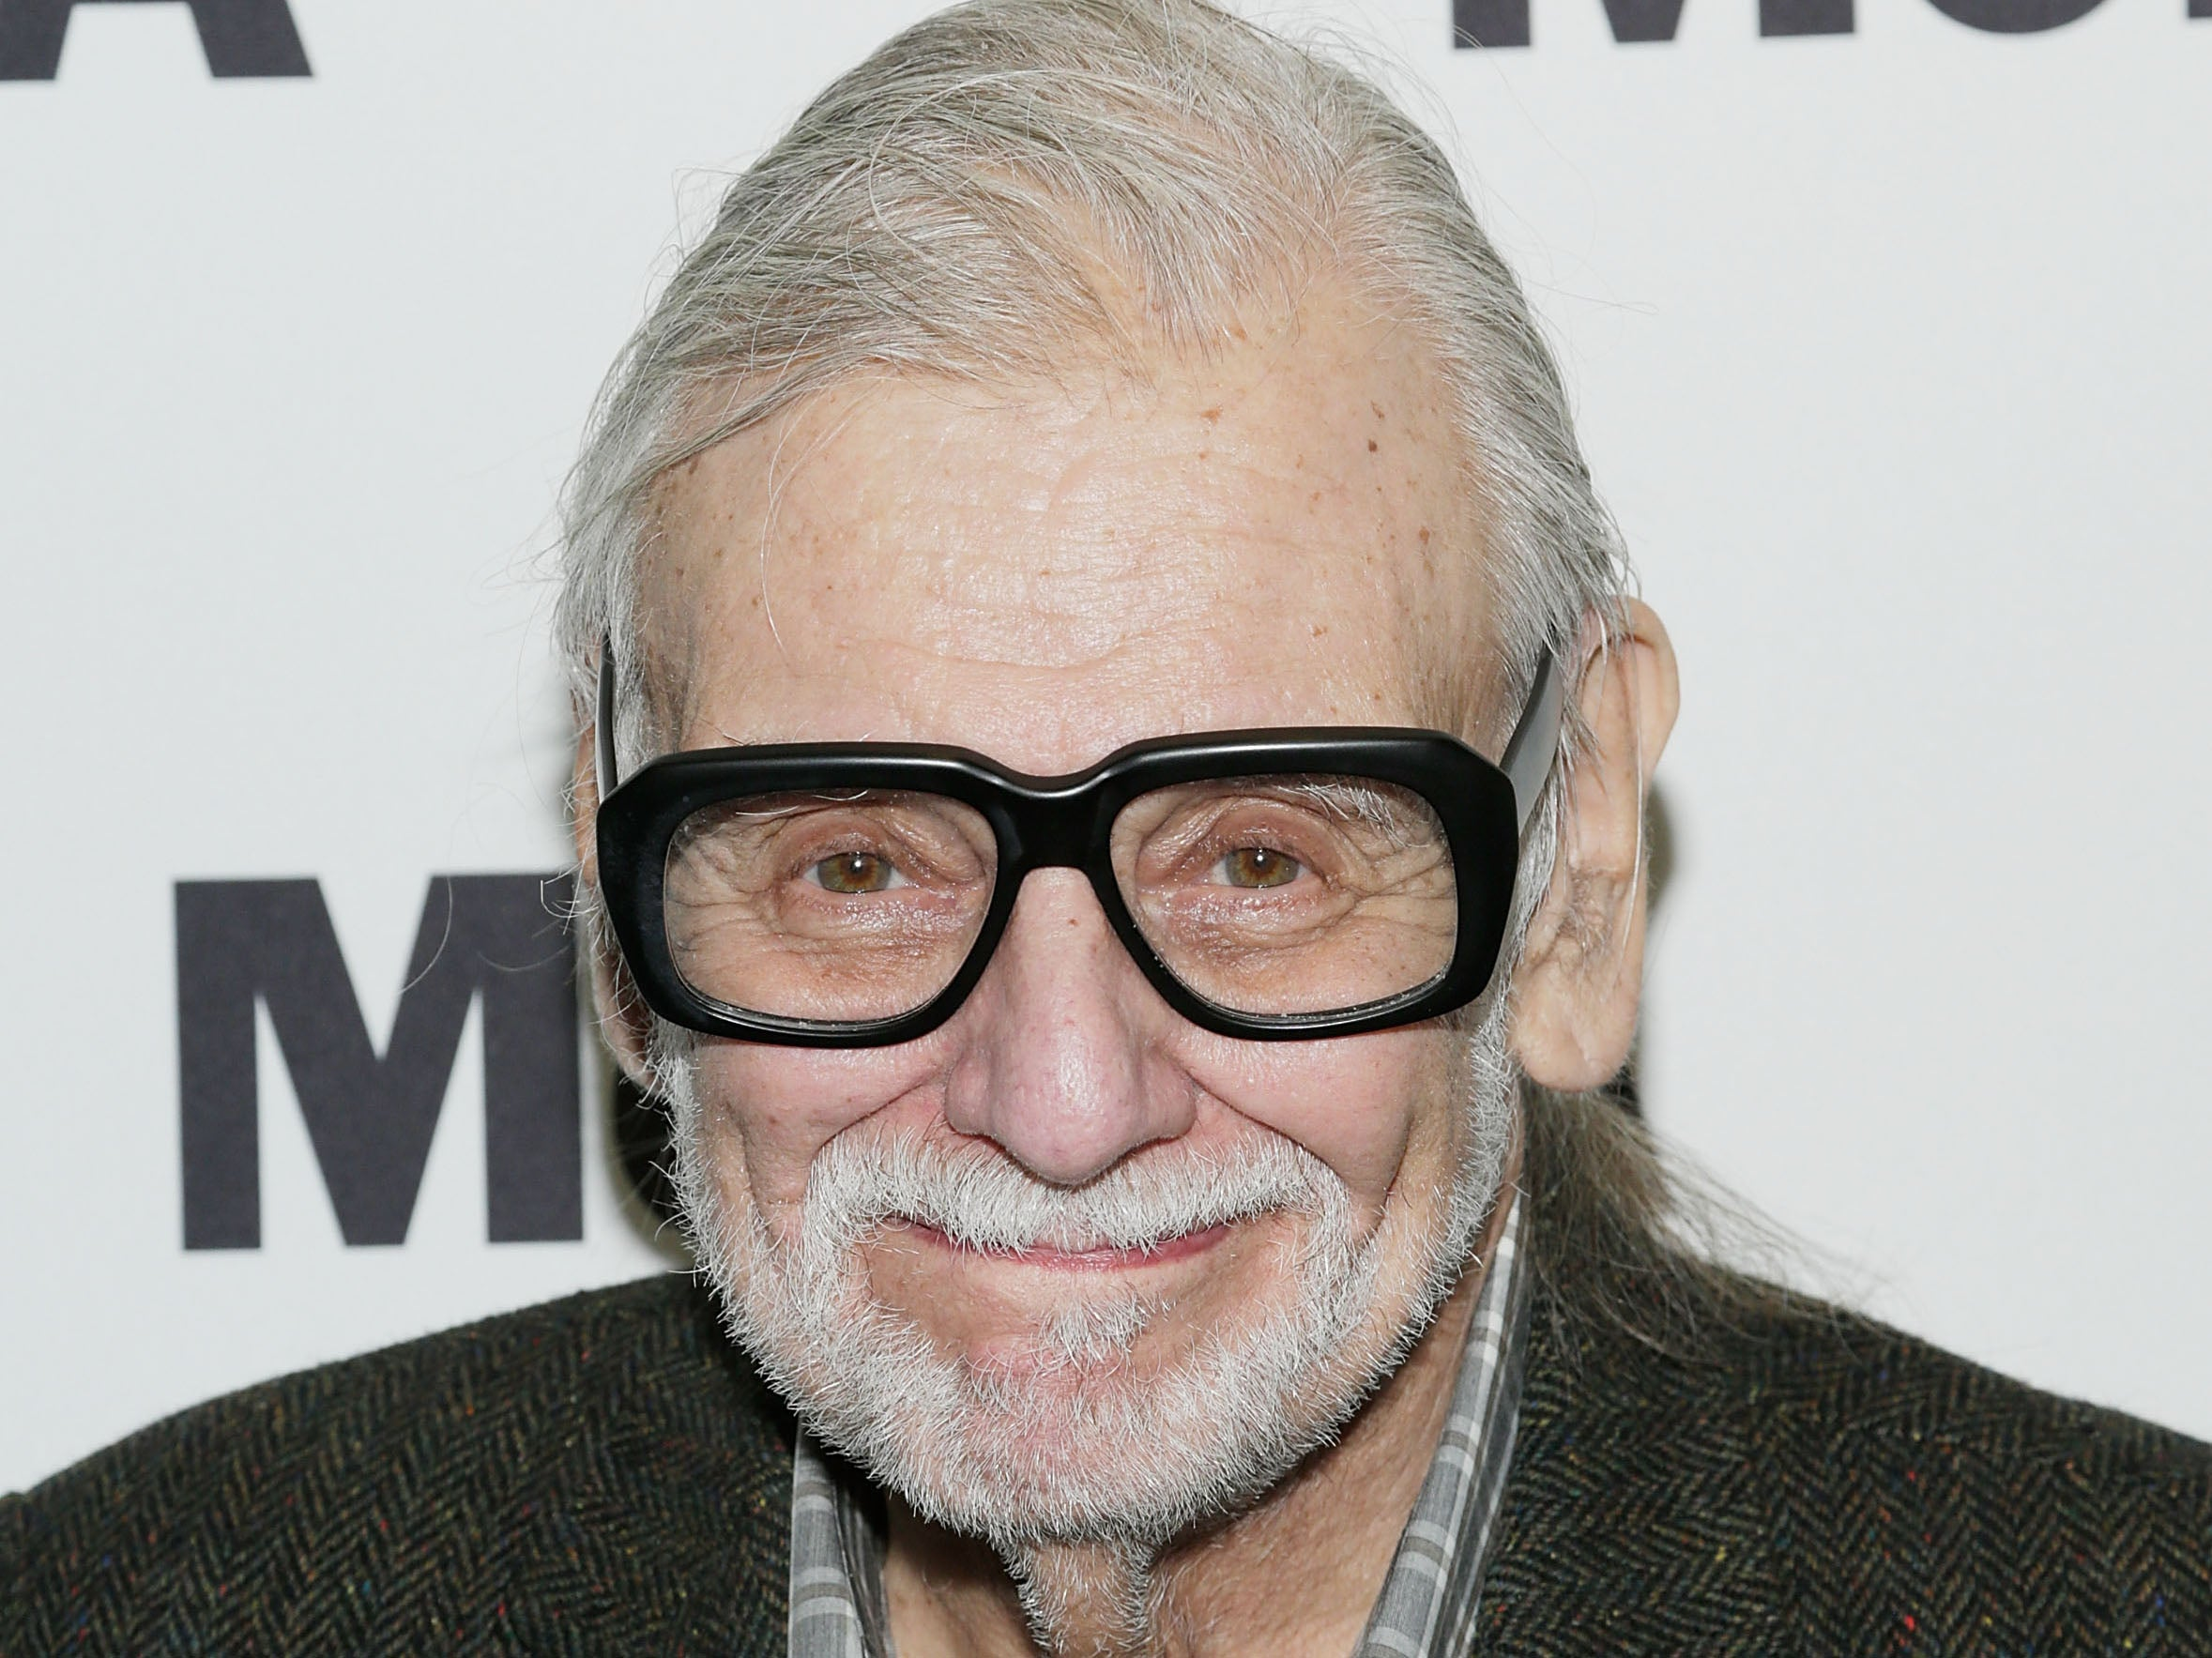 George Romero Night Of The Living Dead Director Dies At 77 The Independent